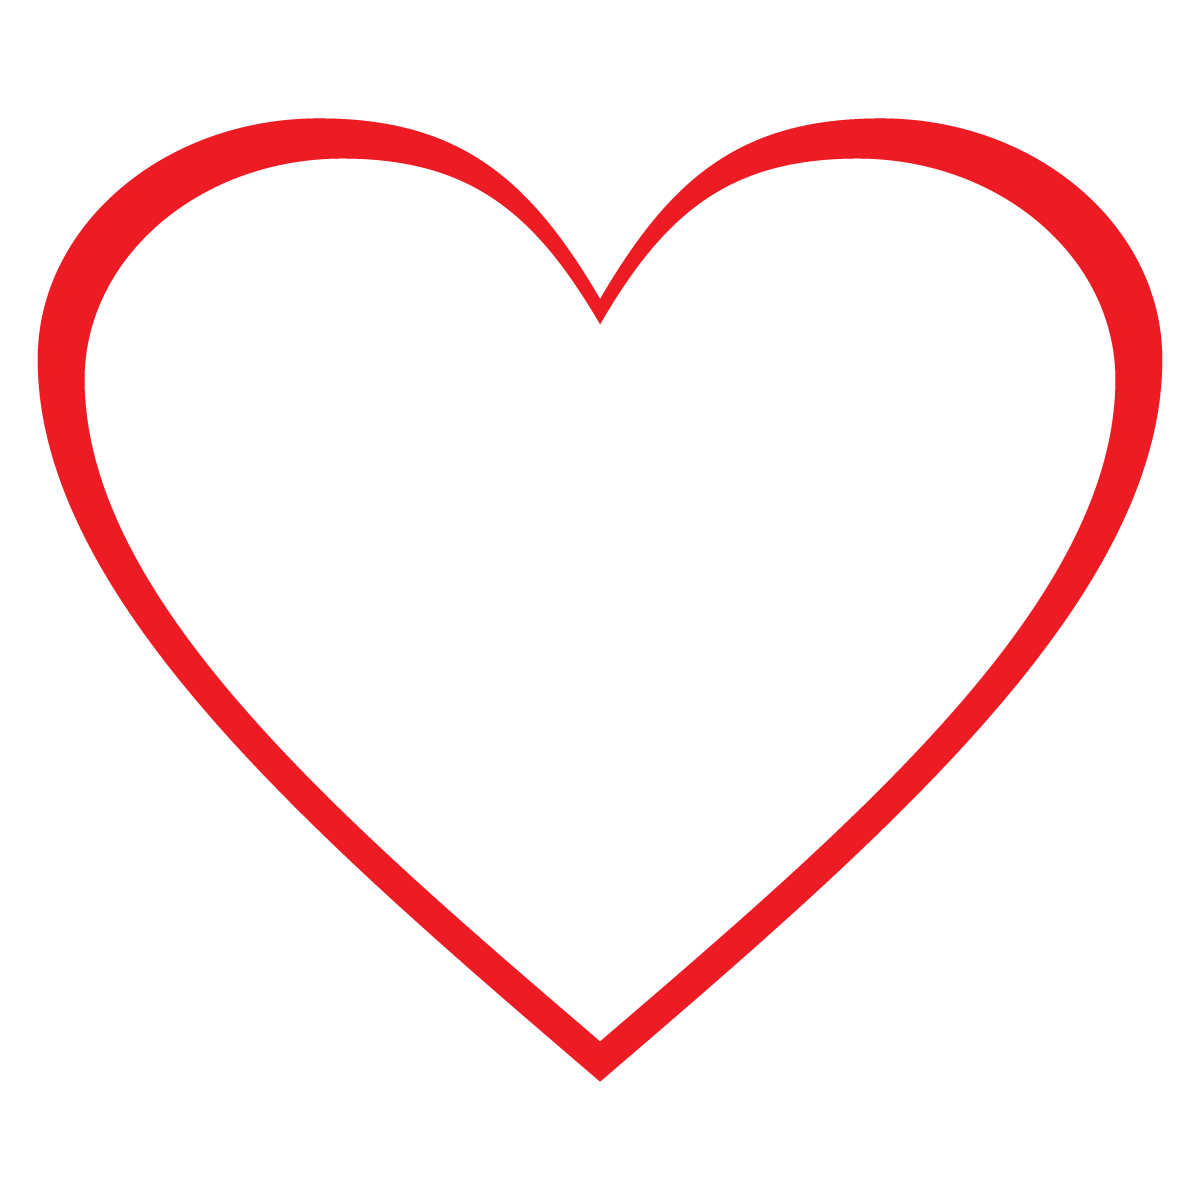 Weight clipart heart. Free clip art of